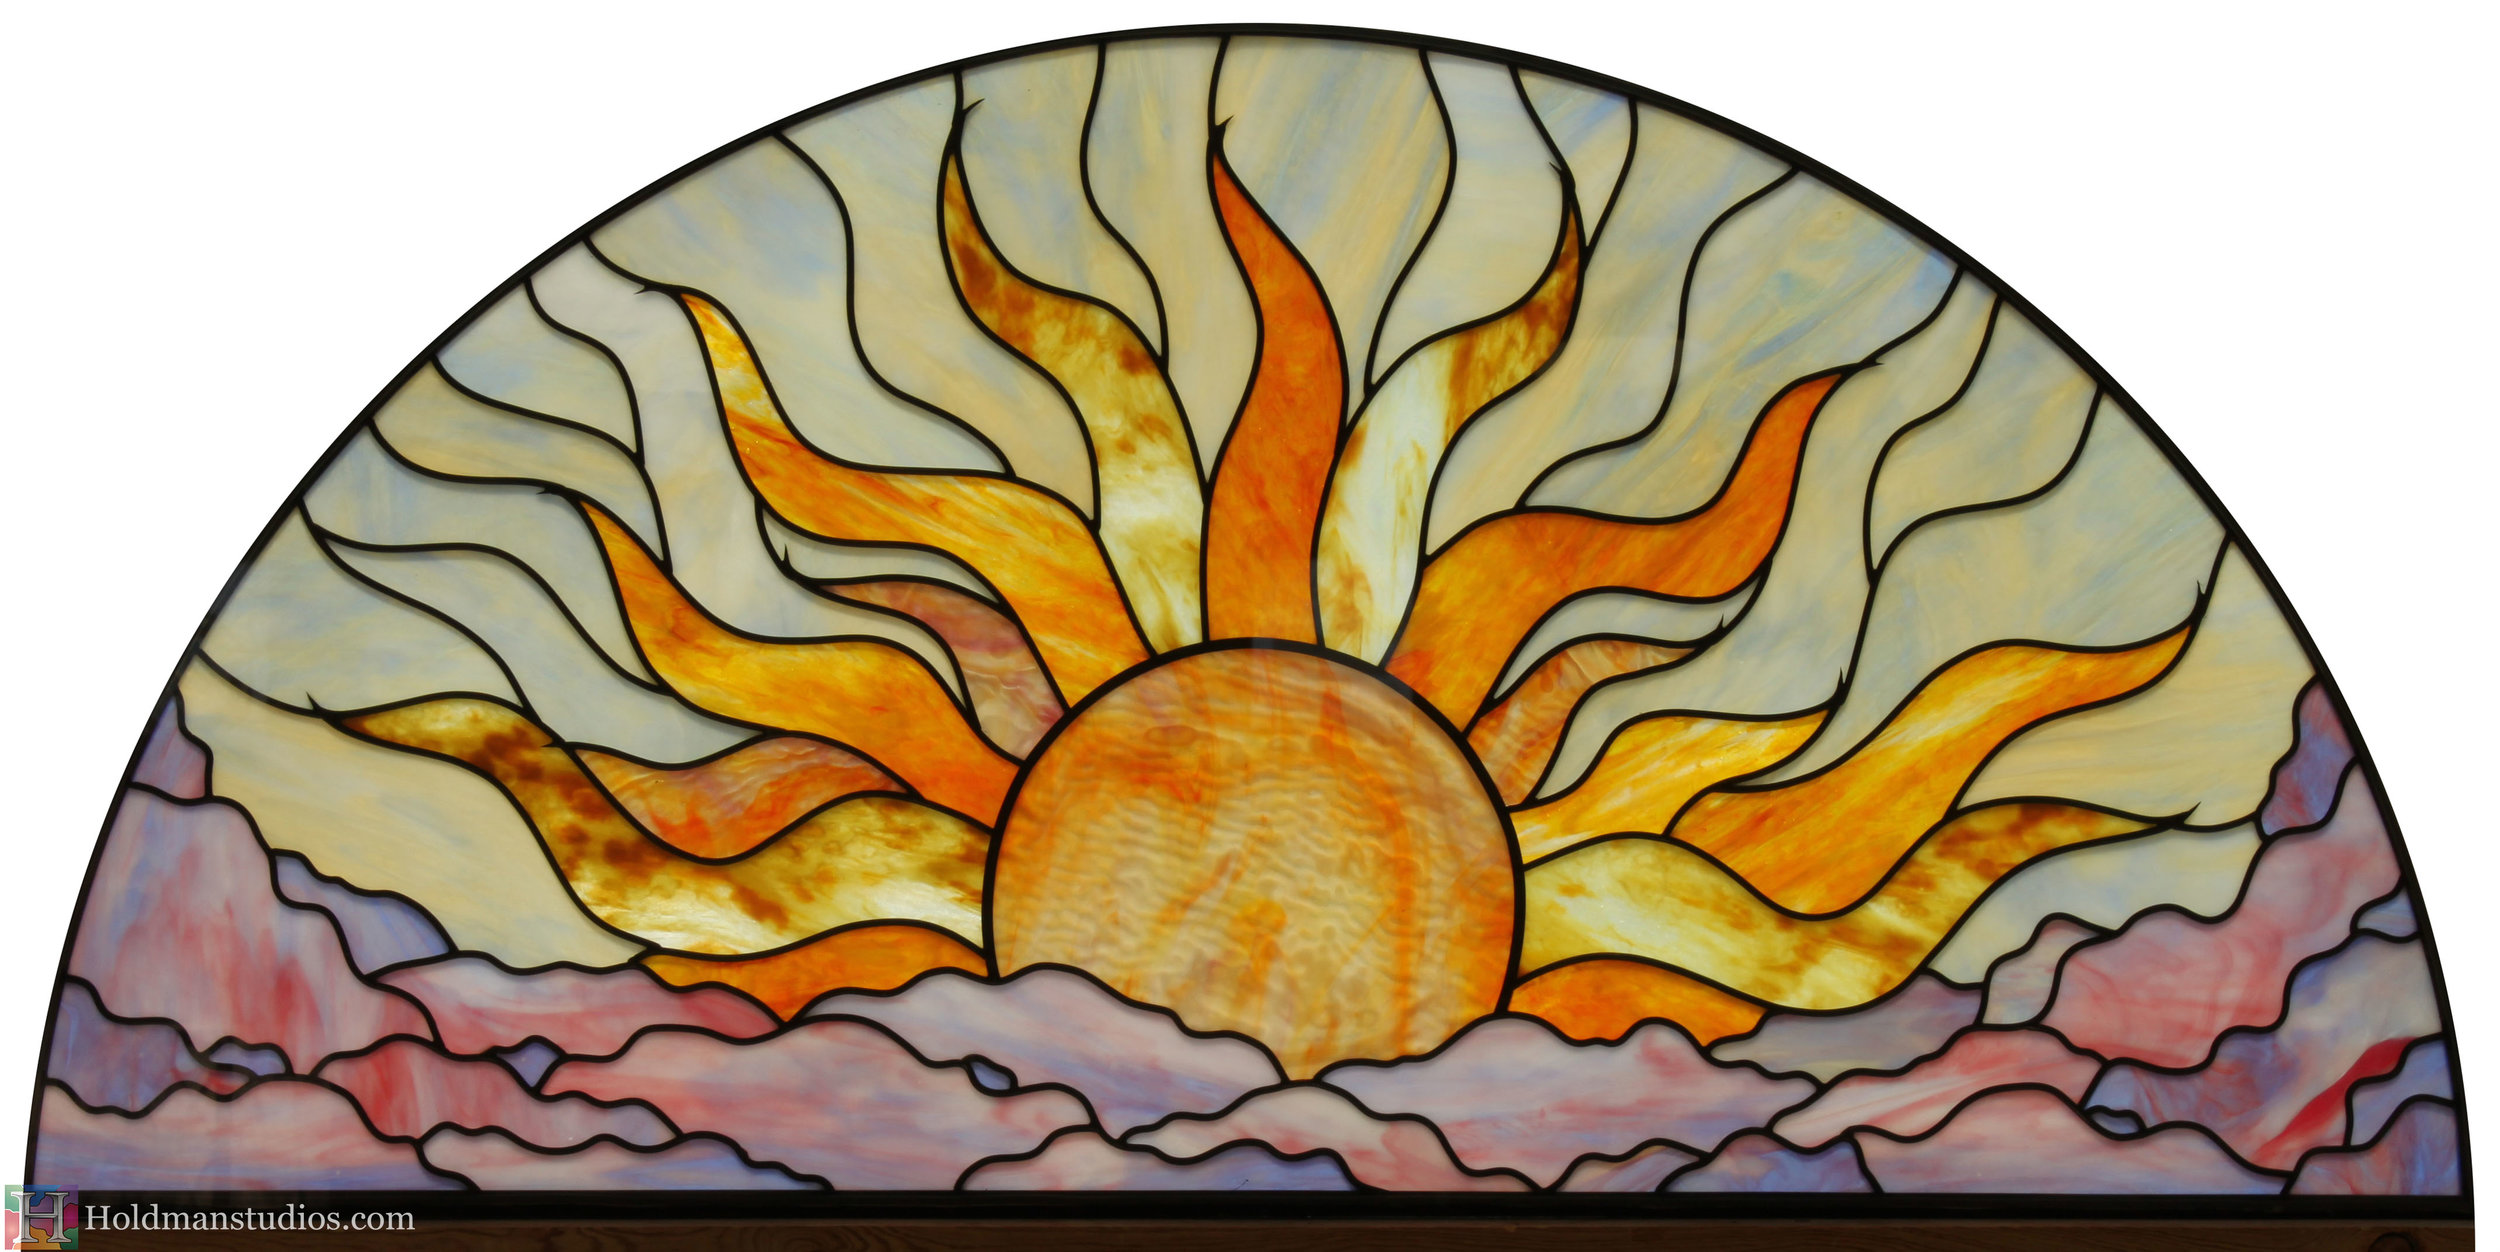 Holdman-Studios-Stained-Glass-Lunette-Window-Sun-Sky-Clouds-White-Background.jpg